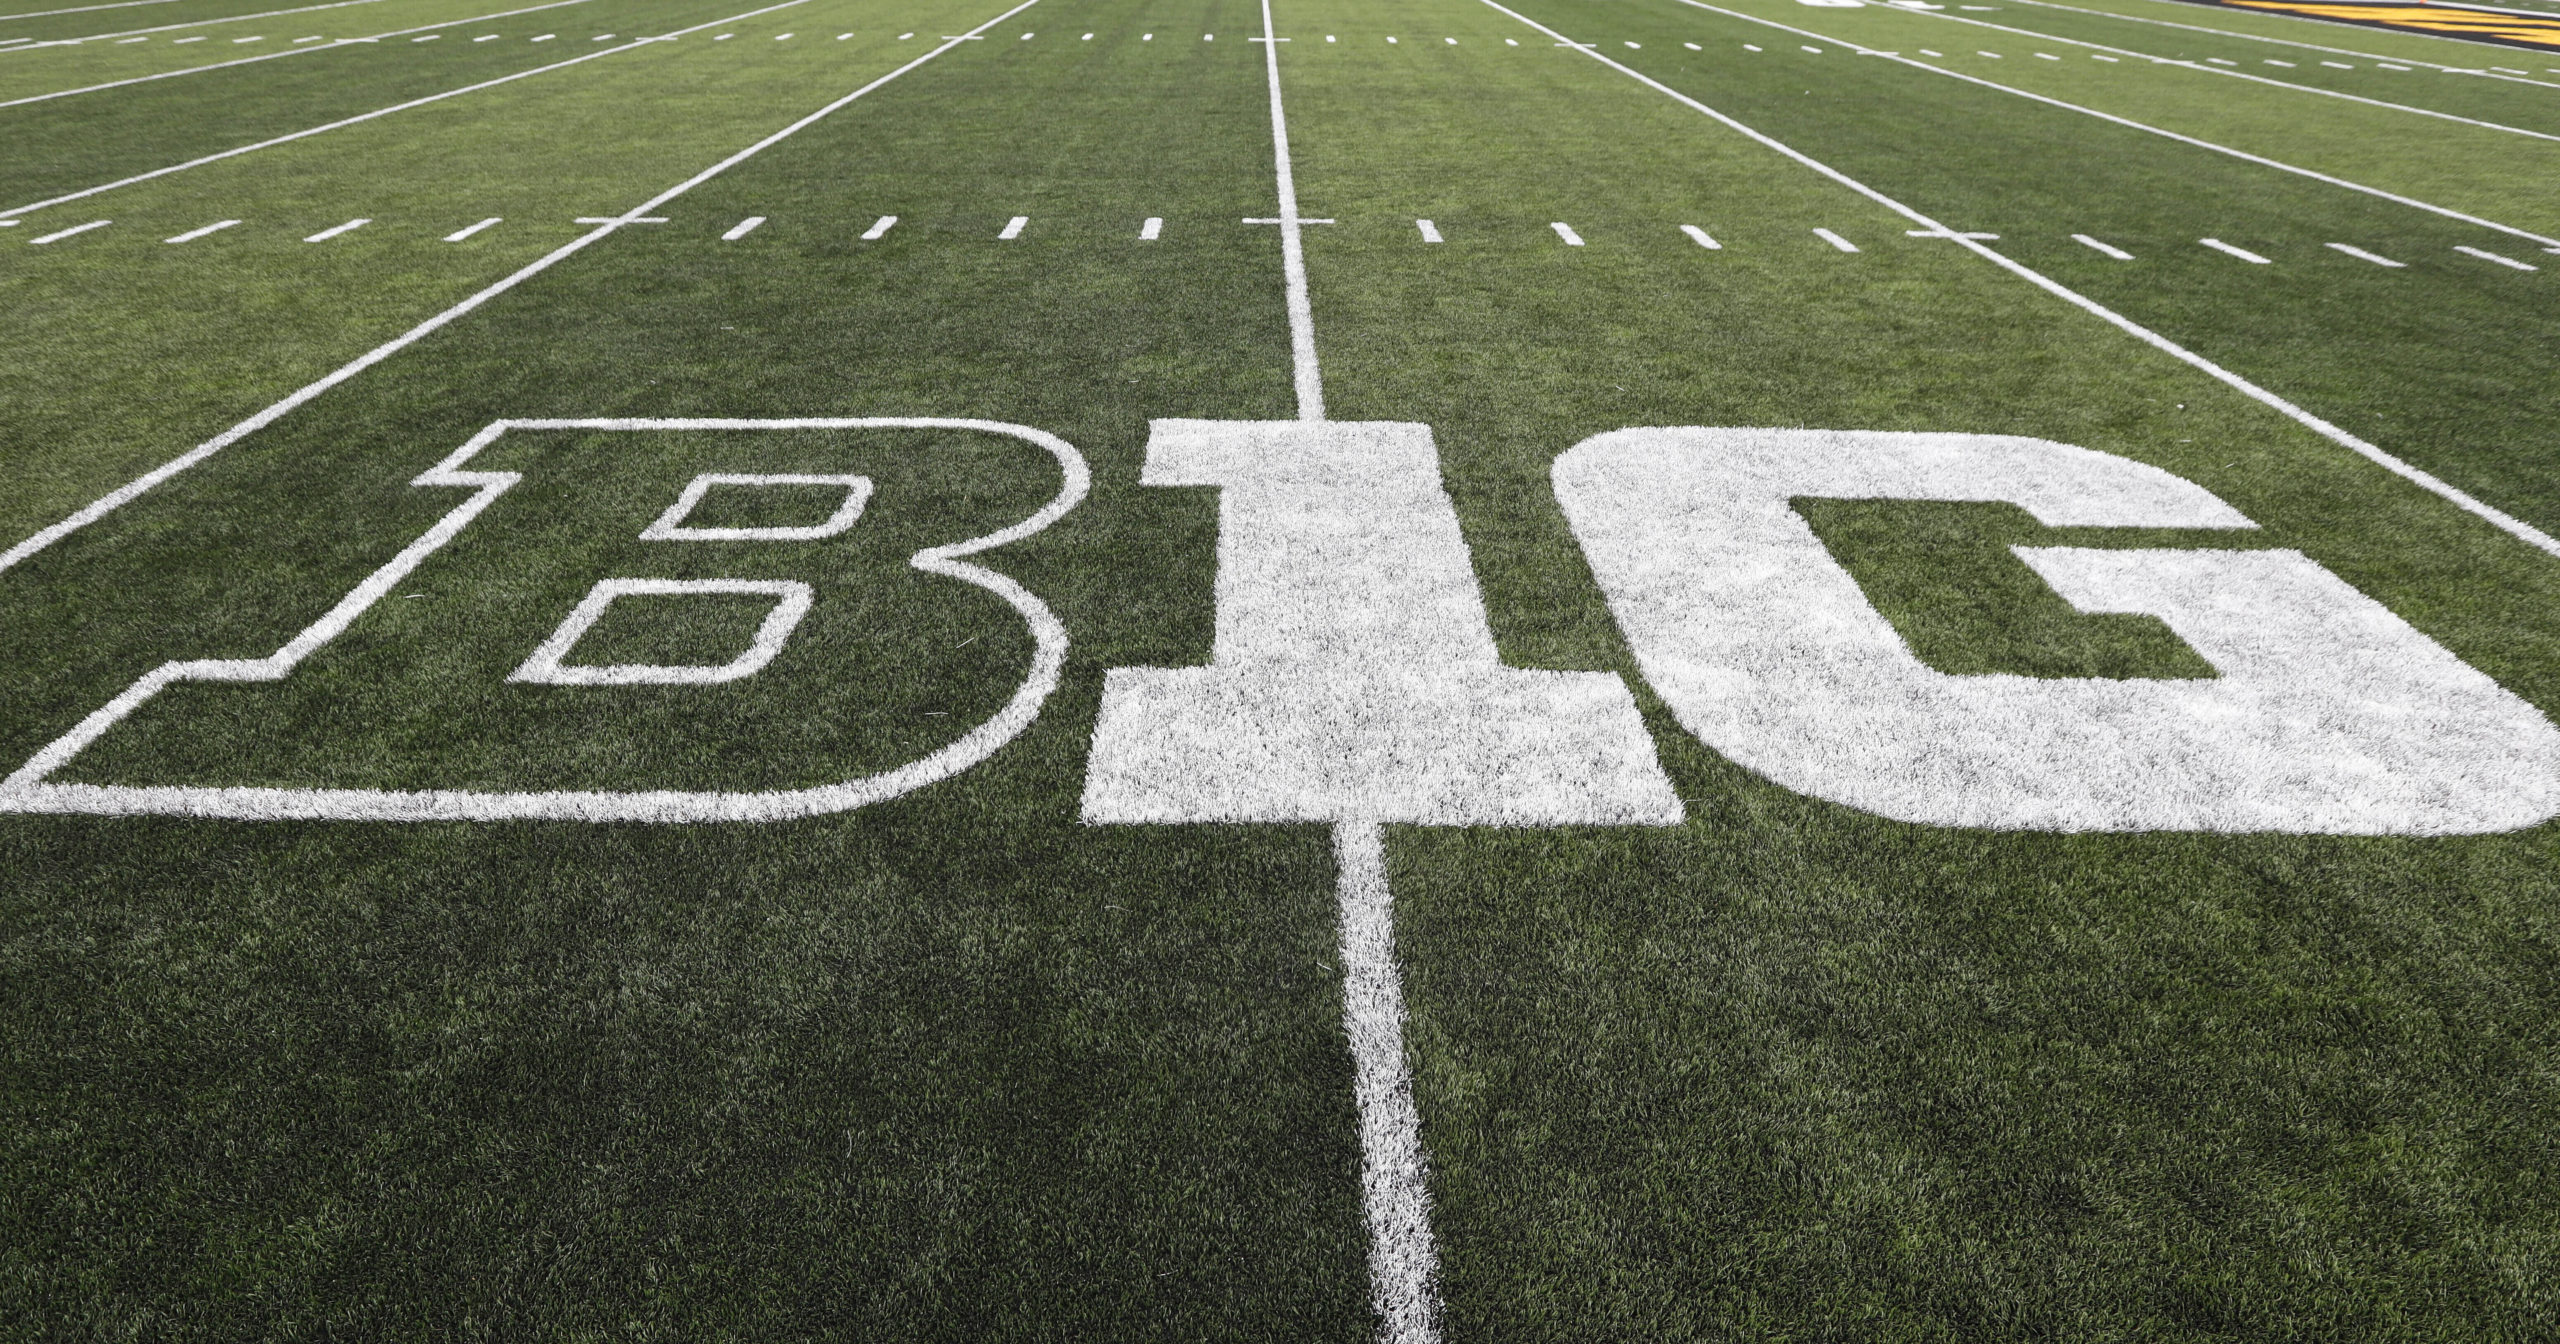 President Donald Trump spoke with Big Ten Commissioner Kevin Warren about the possibility of reinstating the conference's fall football season.